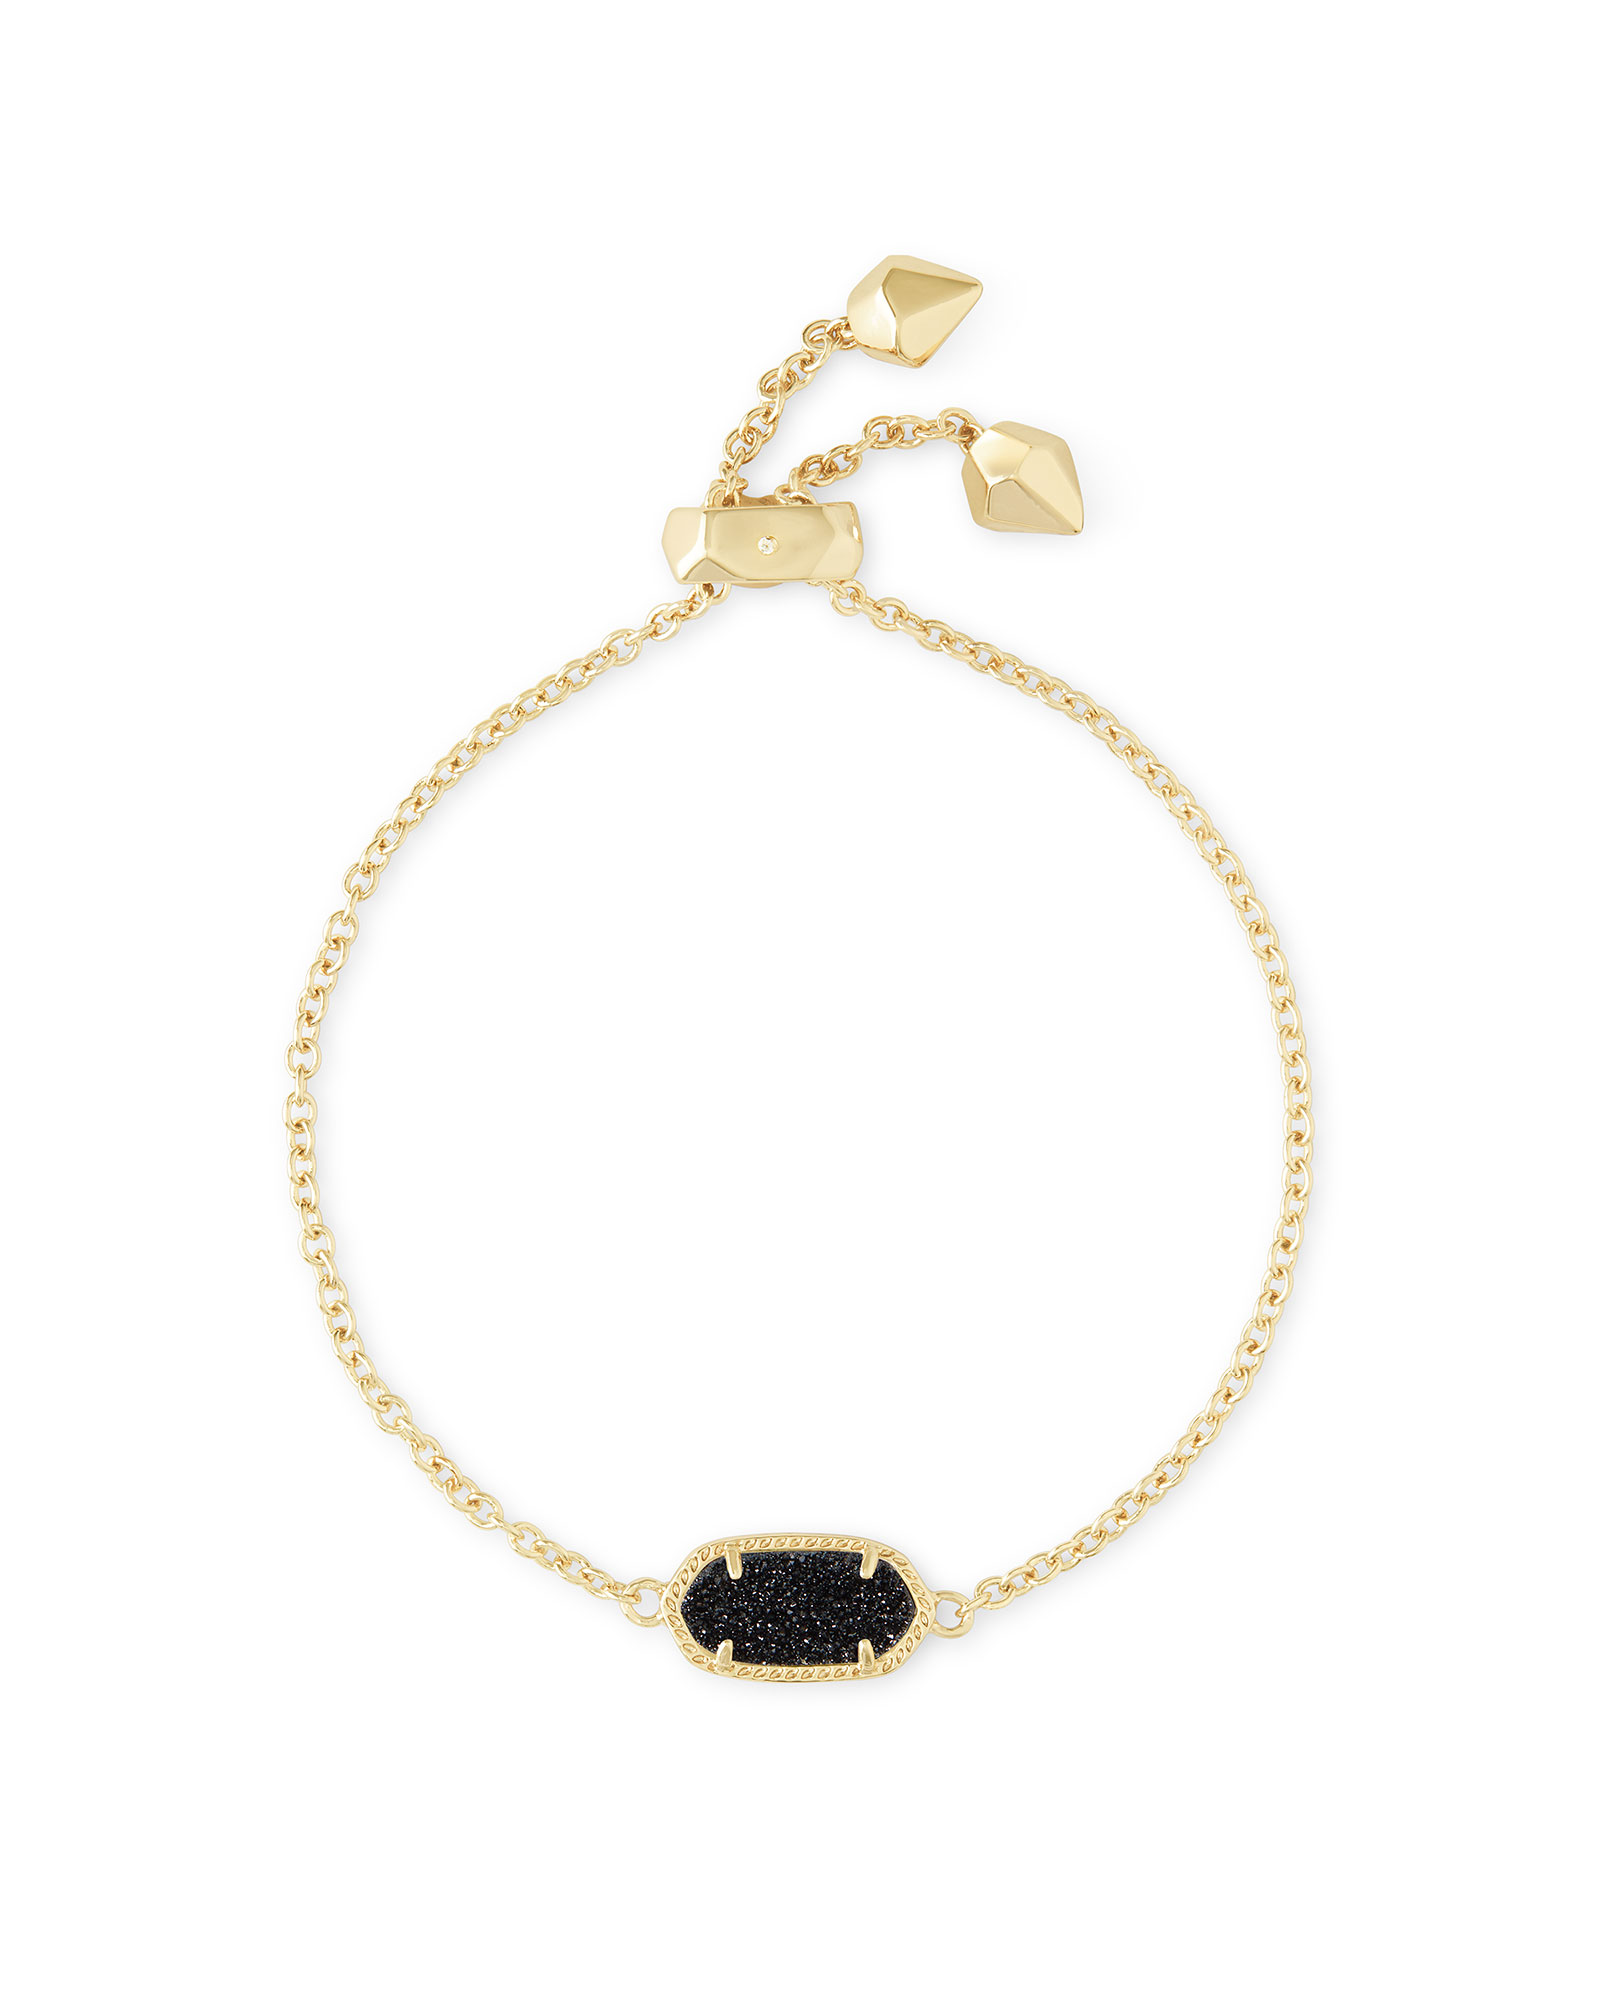 Elaina Gold Adjustable Chain Bracelet in Black Drusy